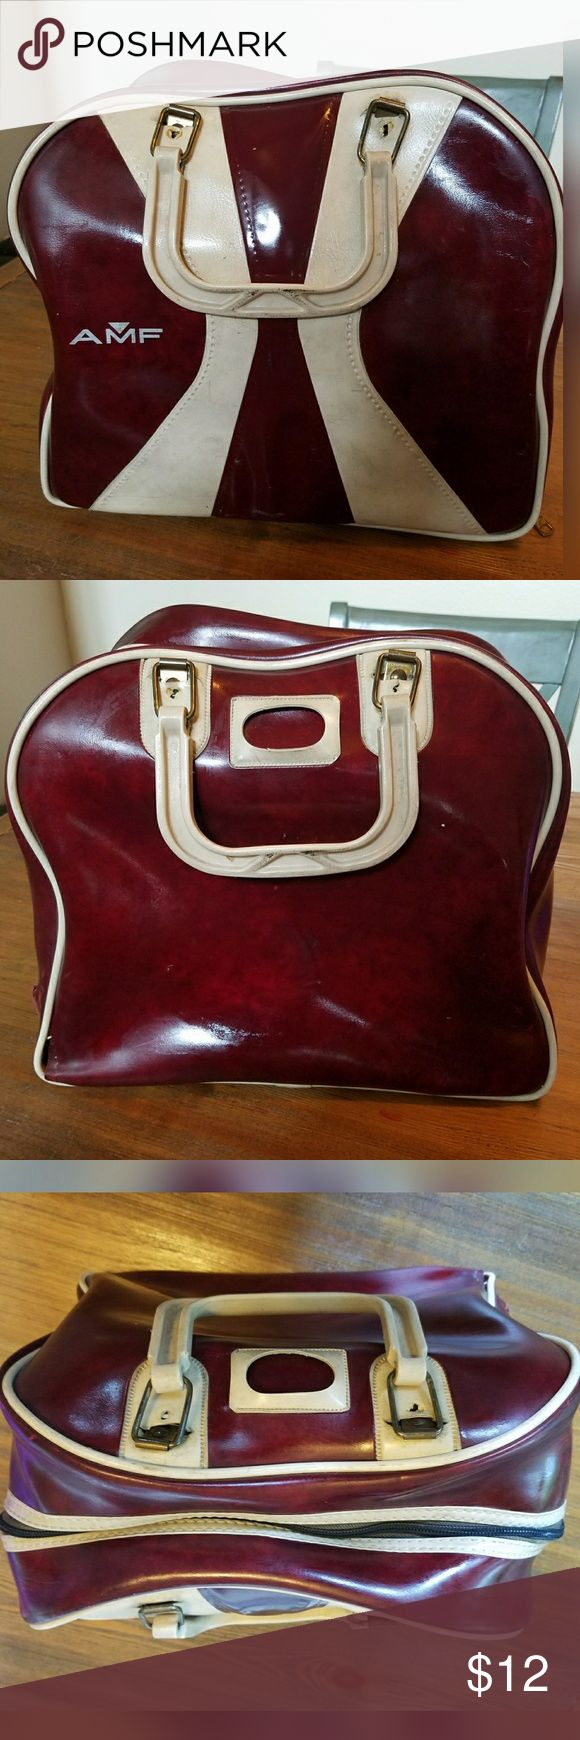 Rad, VINTAGE, AMF, bowling bag!! Great colors and design. Brand is AMF. Zipper closure. Inside side pocket. Burgundy and cream colors. Ball holder has been removed. Some tears (one medium sized one on side - See 7th pic) and definite signs of wear. Imperfections reflected in price. Vintage Bags